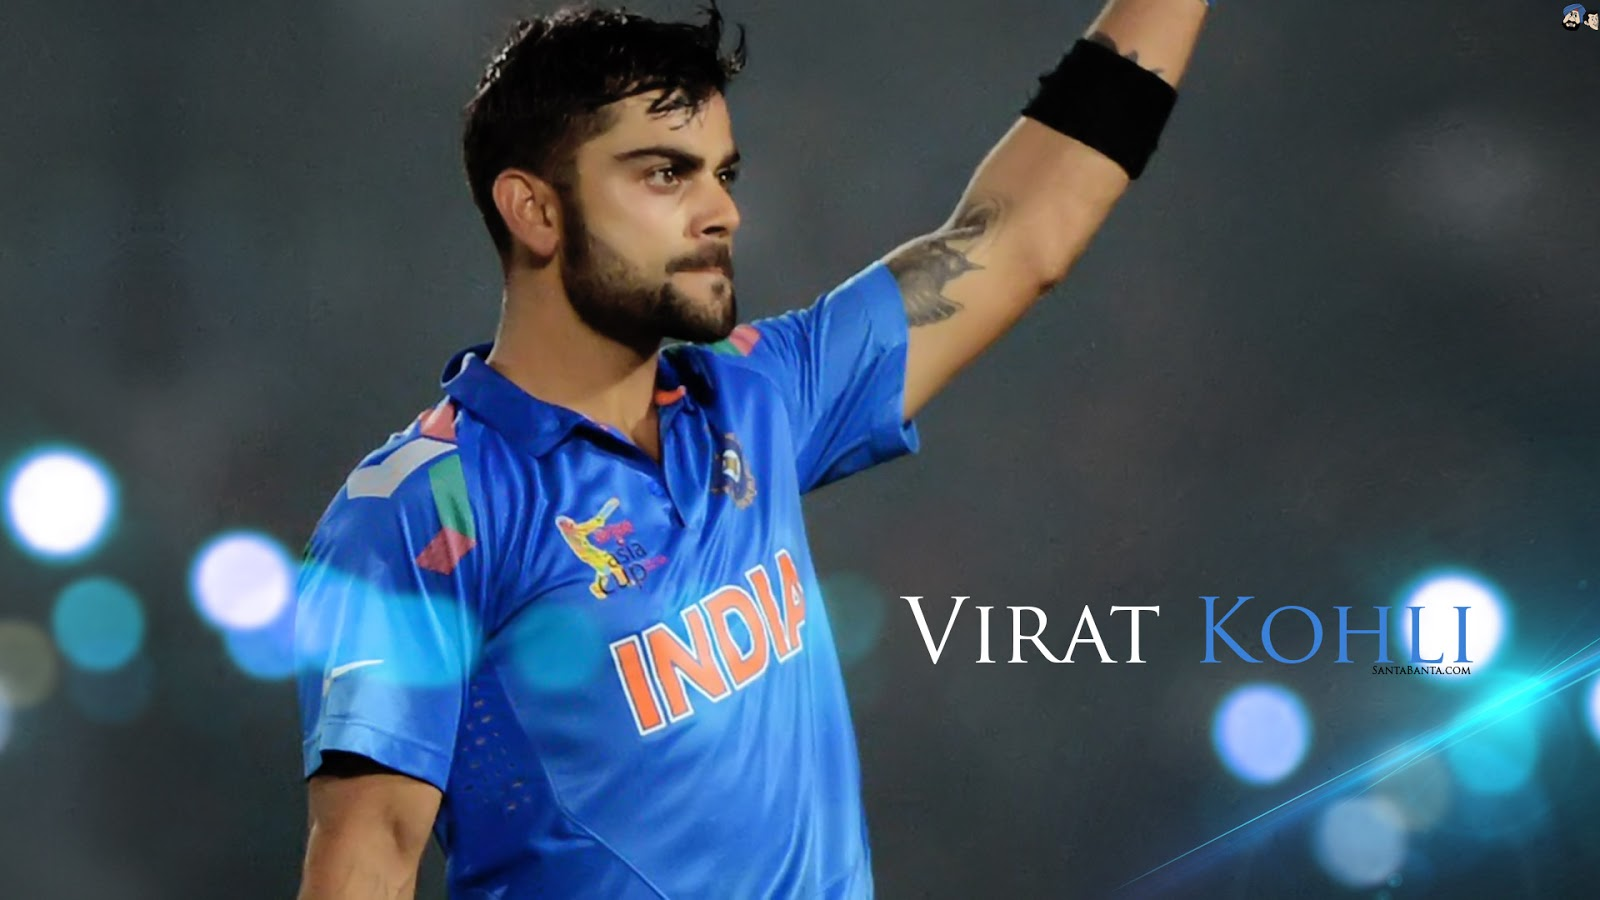 Indian Cricketers HD Wallpaper | Desktop Wallpapers | Latest Bollywood Celebrities Cricketer ...